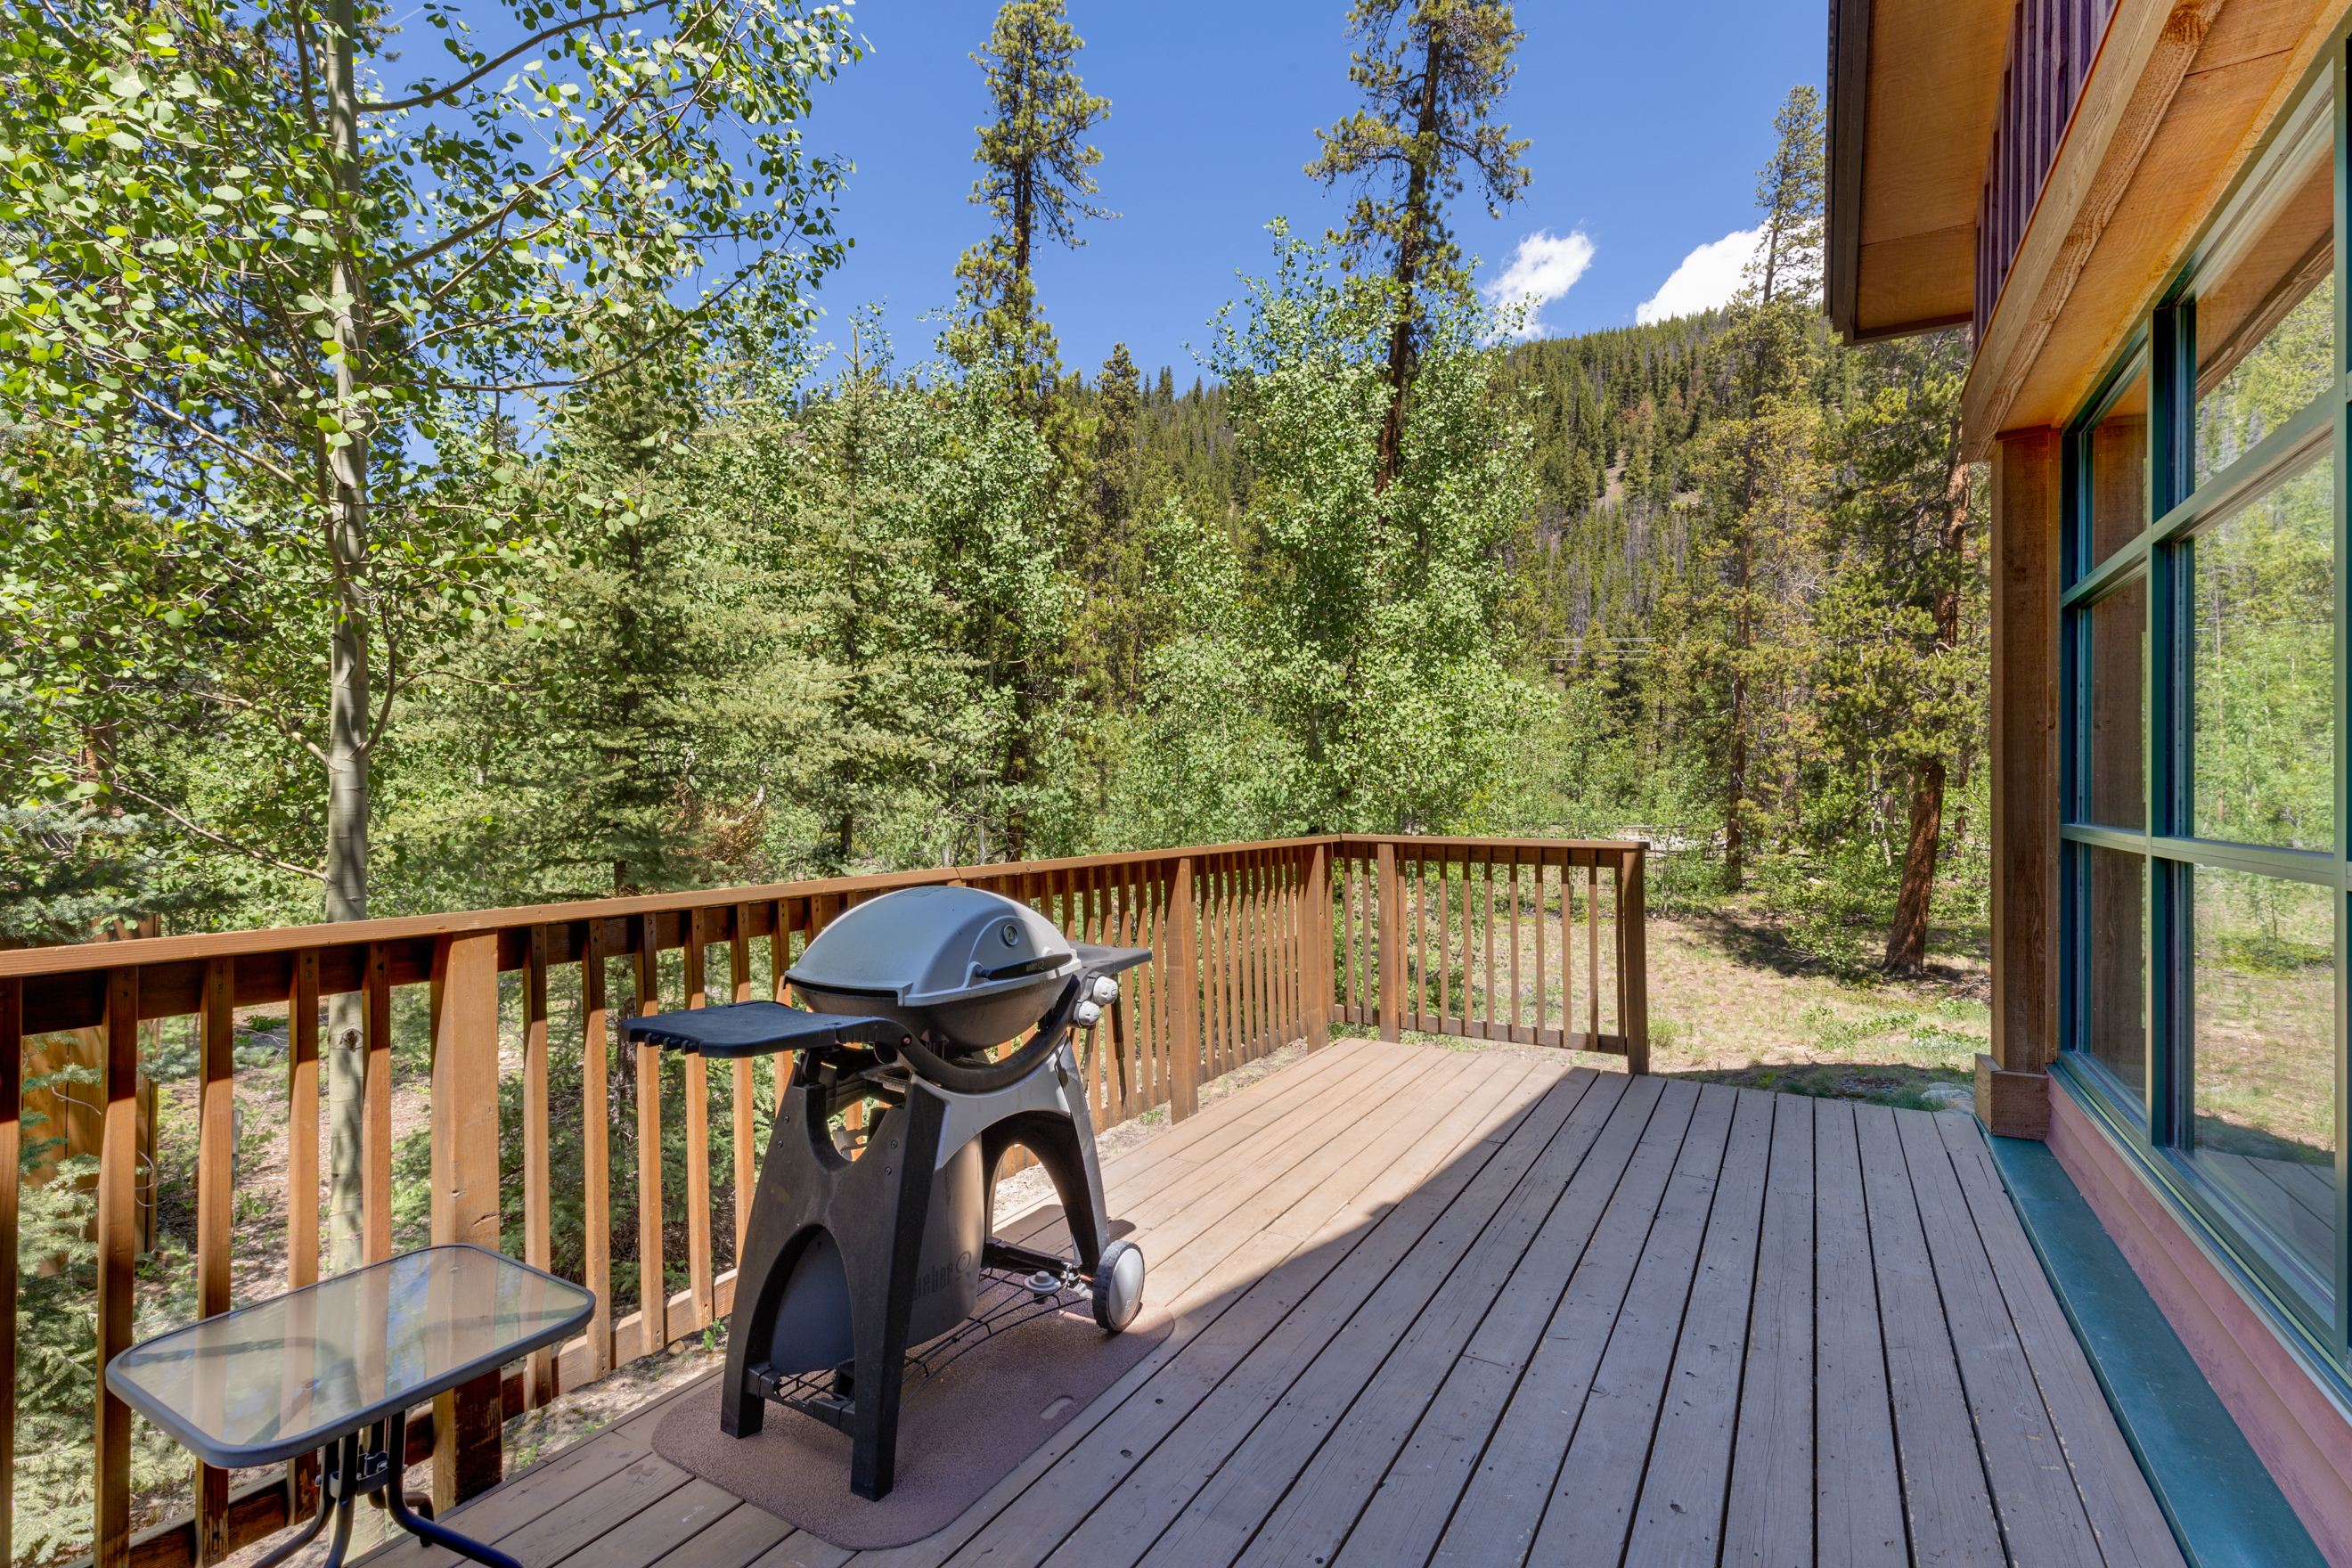 Spacious Private Deck with Beautiful Views (new photo coming soon)